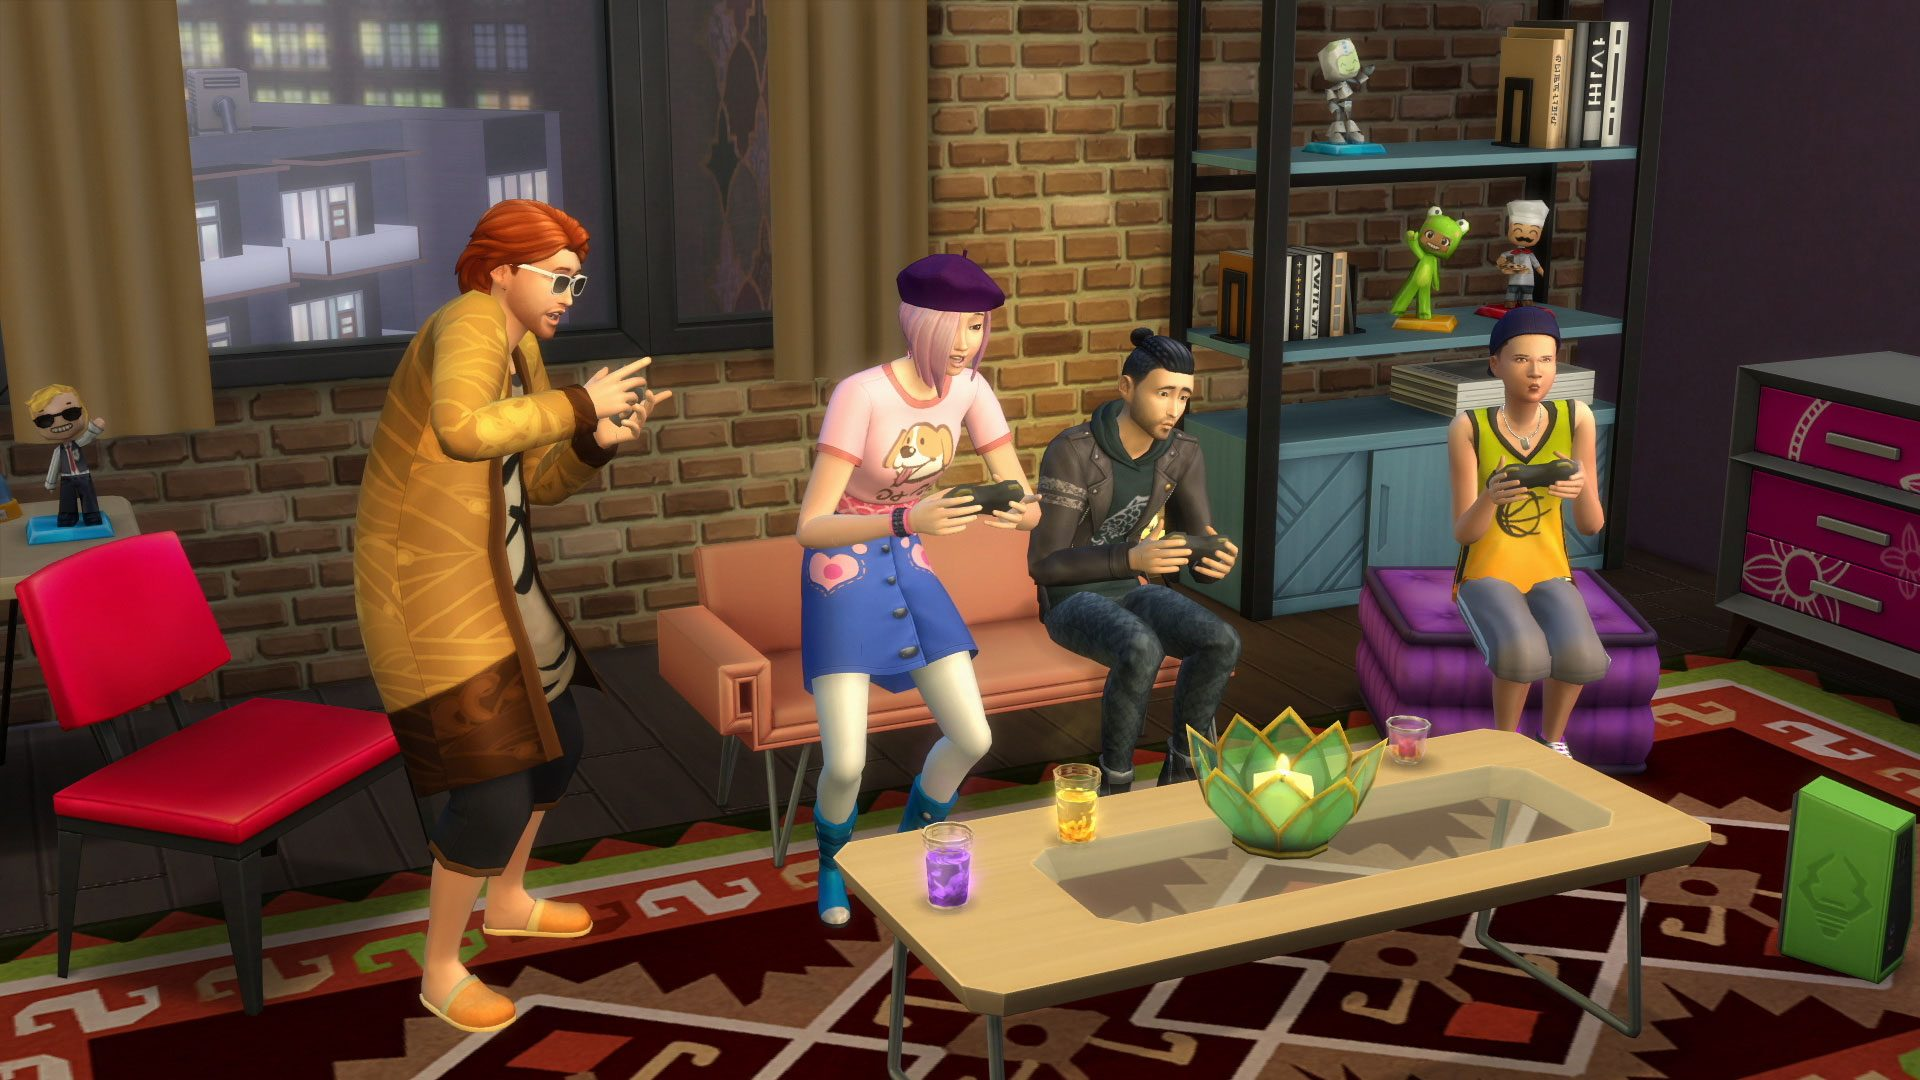 9 Ways Apartments In The Sims 4 City Living Are Different And Awesome